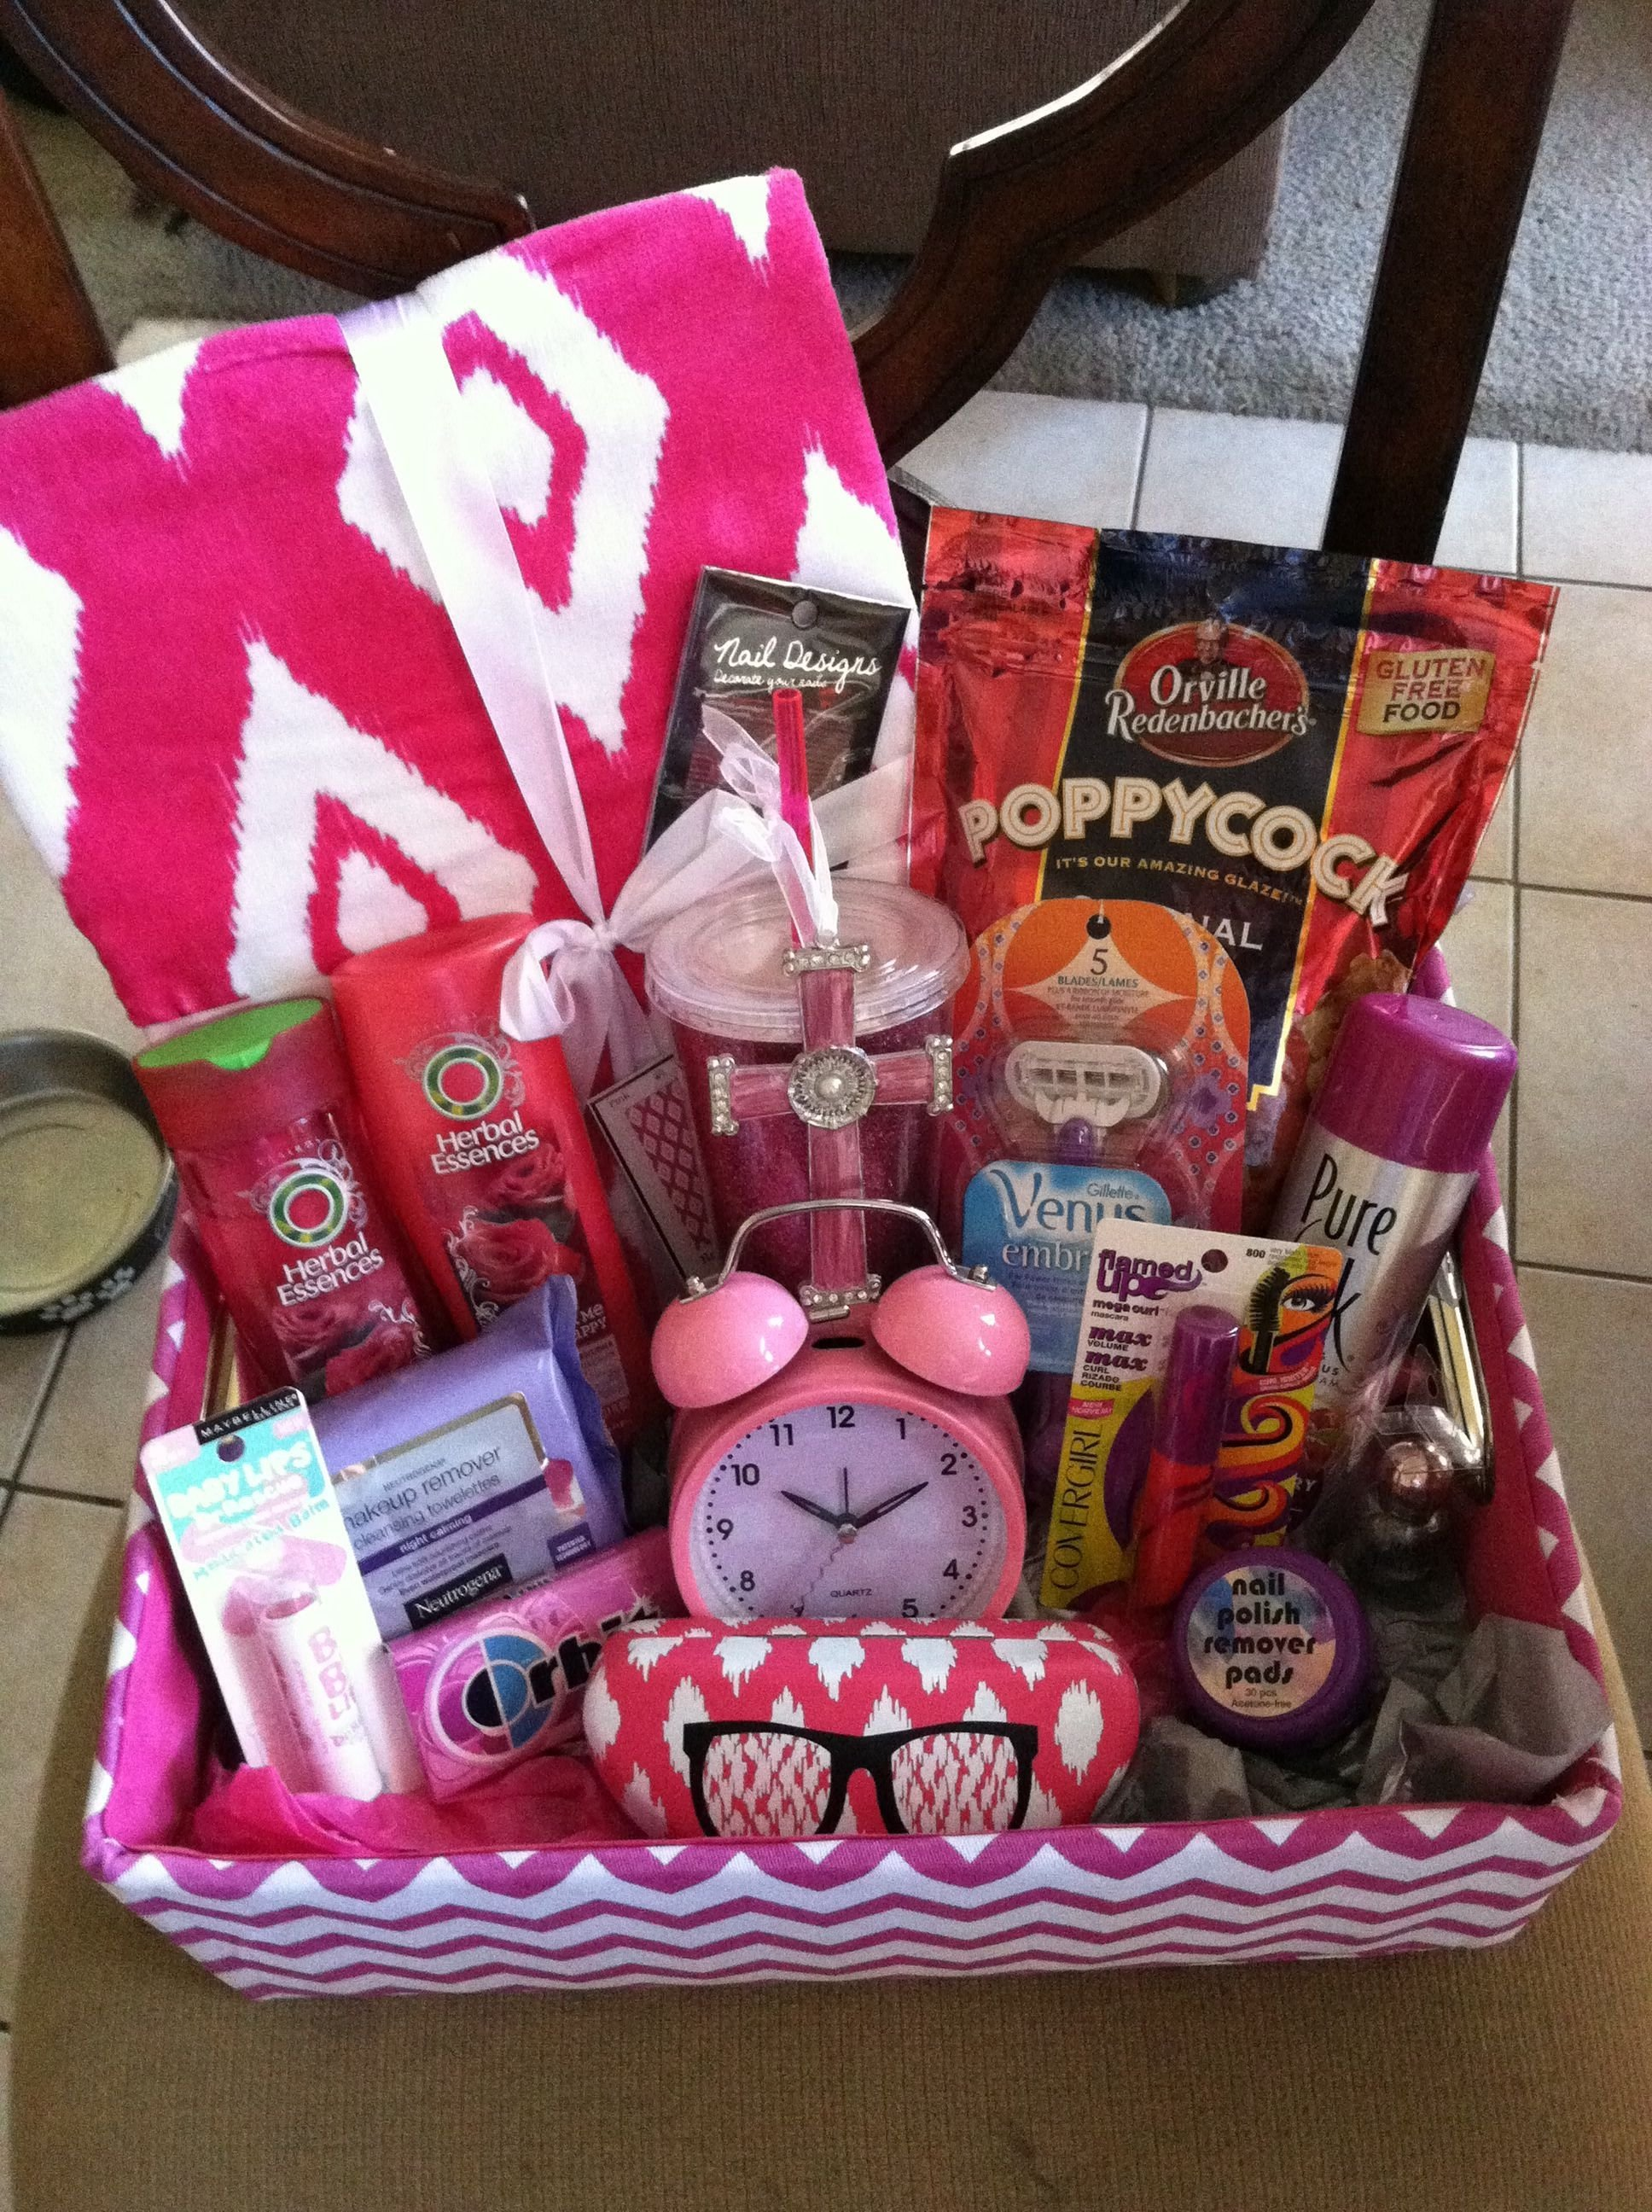 10 Stunning Birthday Gift Basket Ideas For Her 30 Christmas Baskets All Your Loved